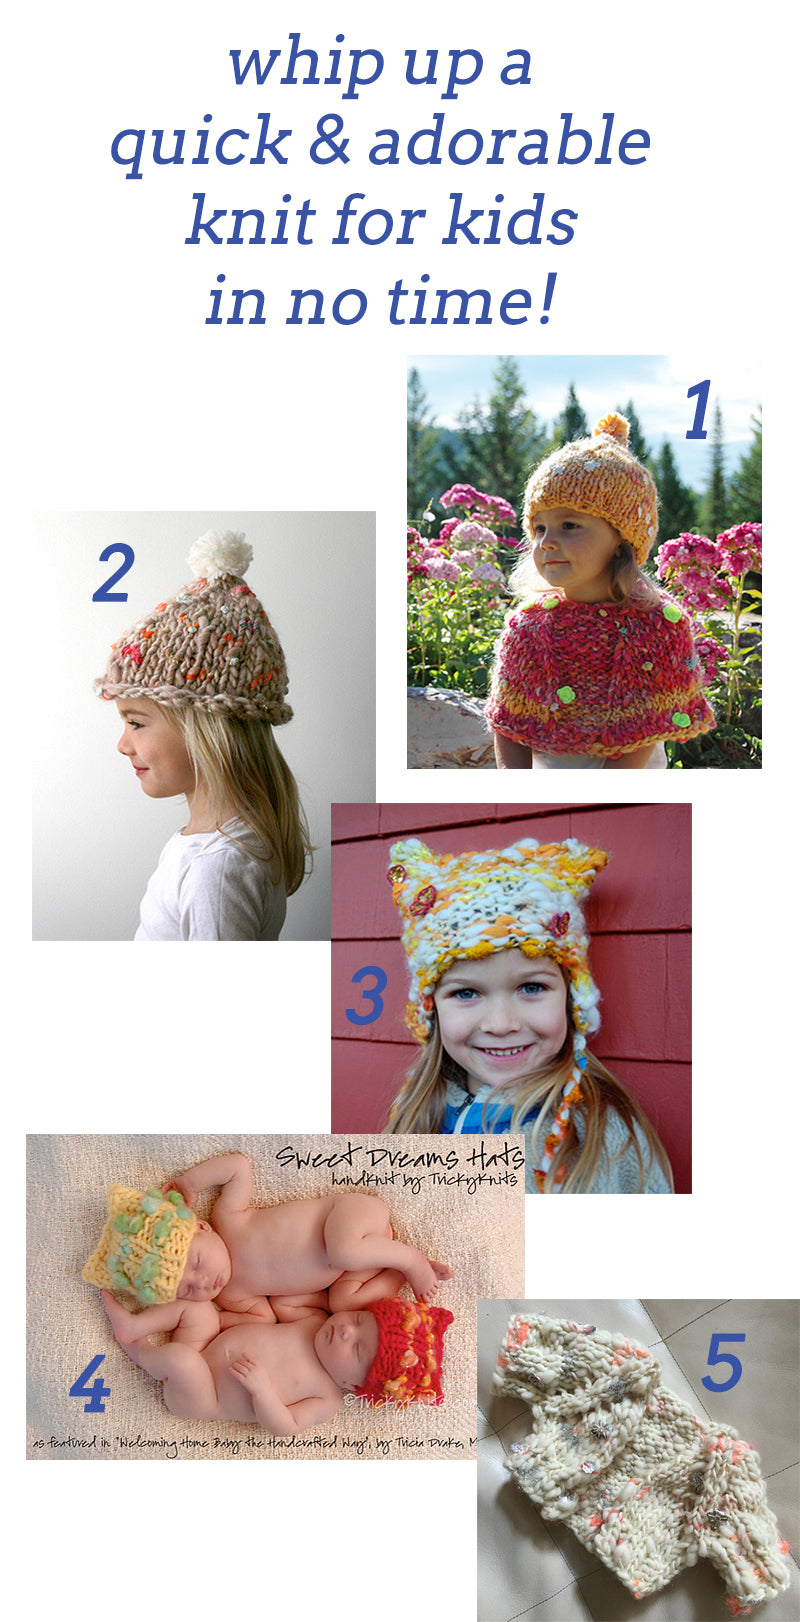 Knit Collage Quick Knit Ideas and Projects for kids